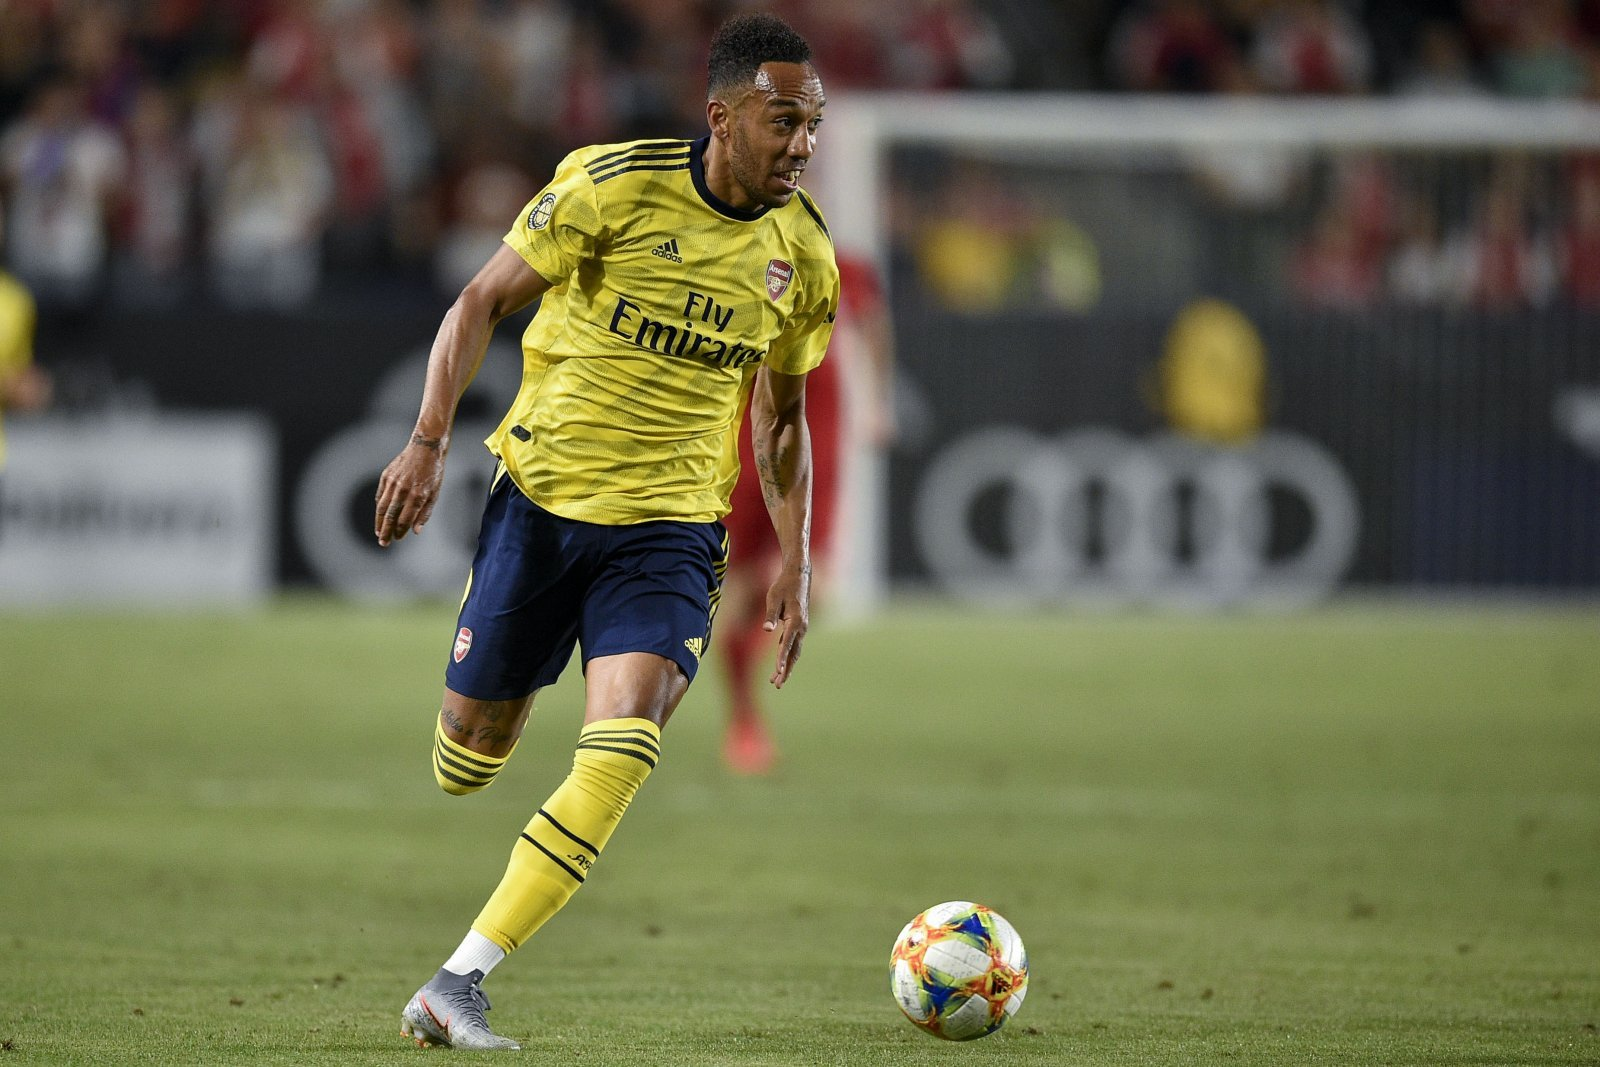 Manchester United: Offer has been made for Arsenal's Pierre-Emerick Aubameyang